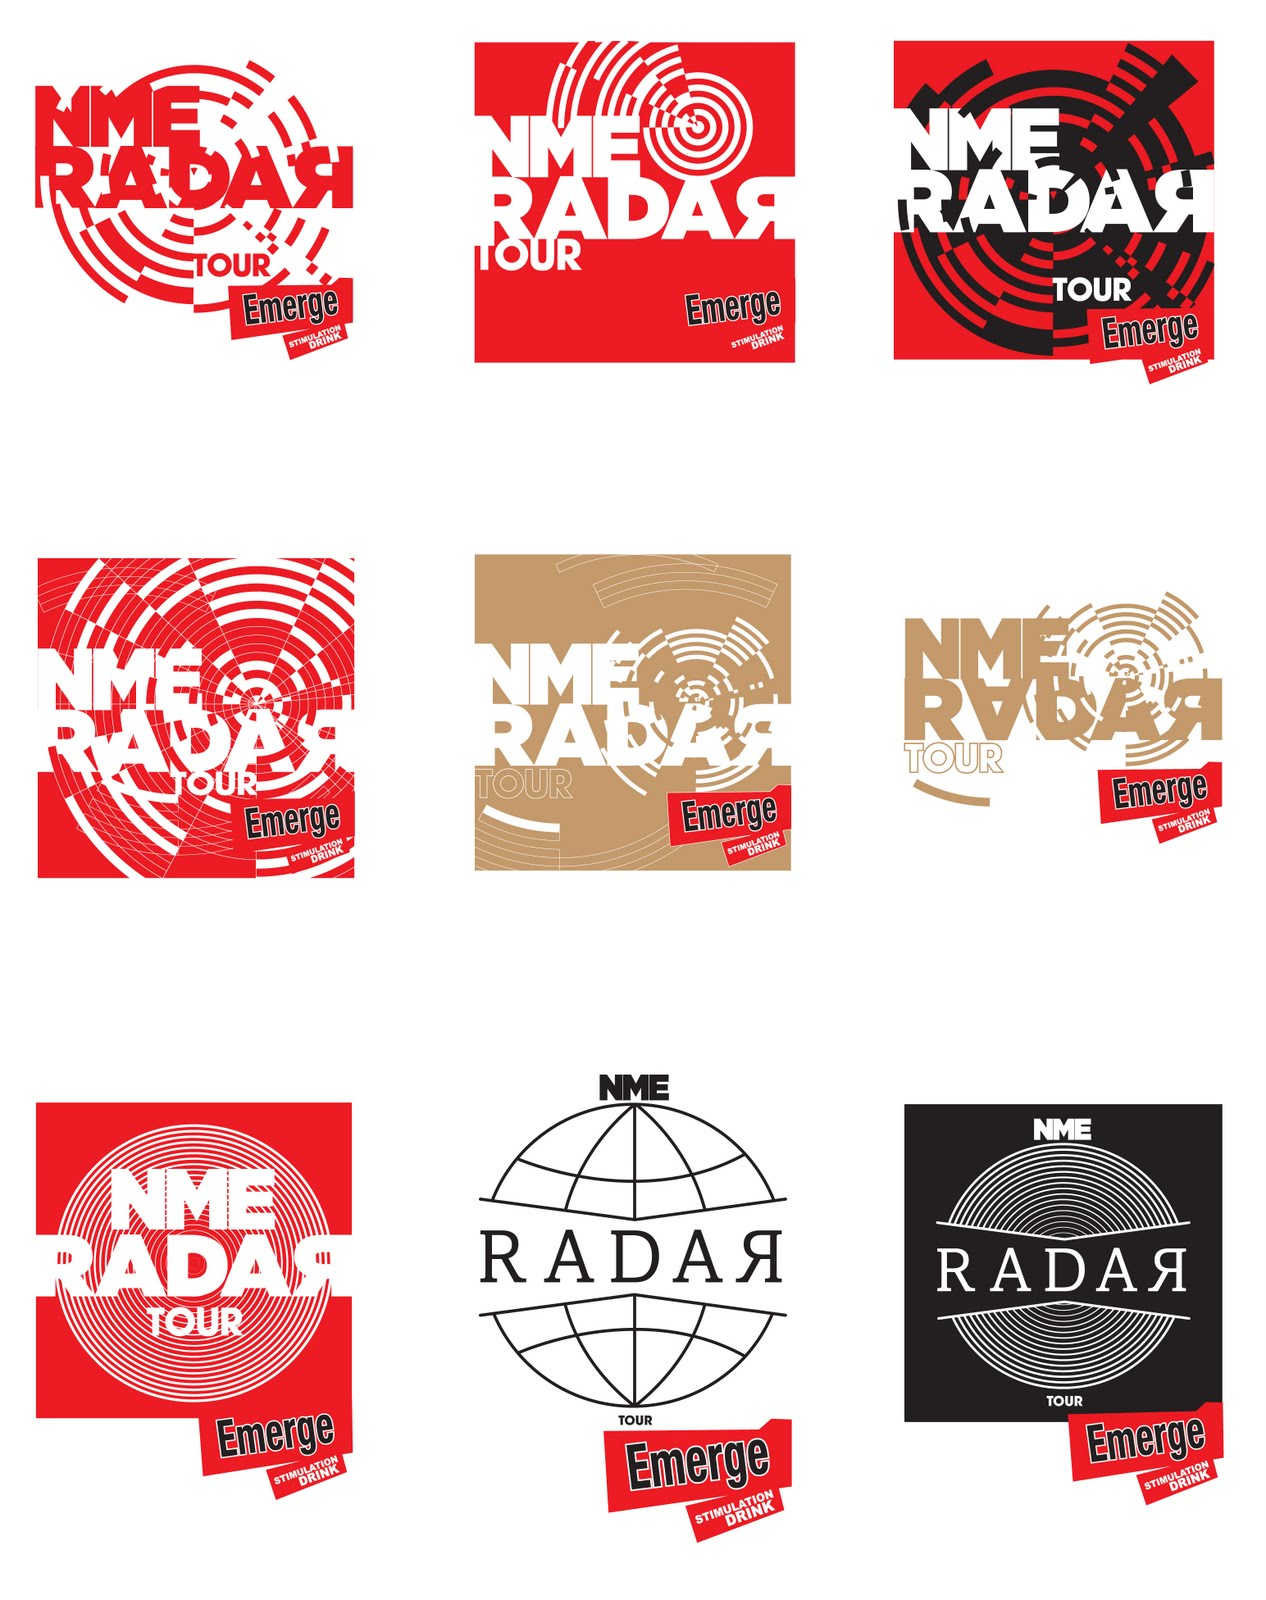 Radar logo design